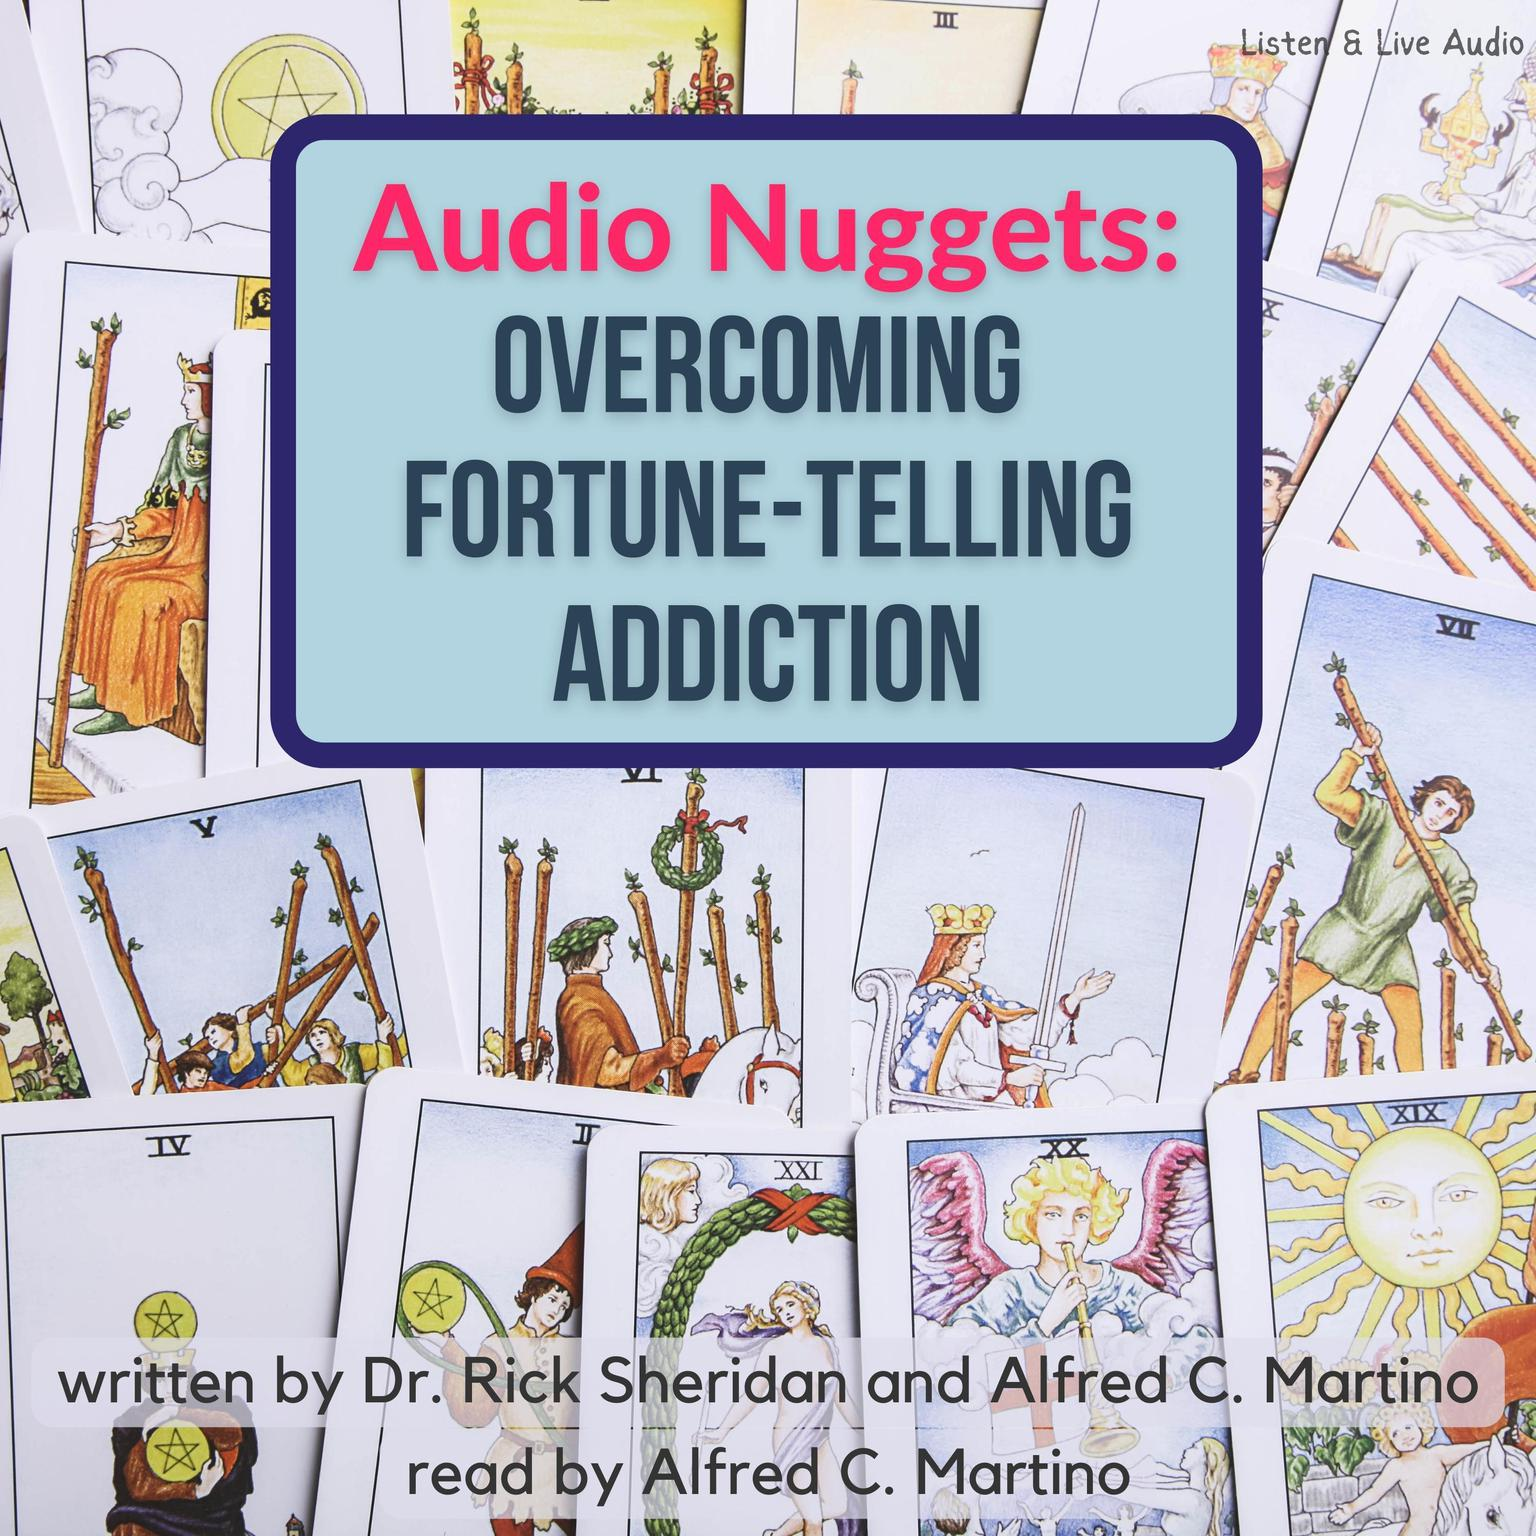 Audio Nuggets: Overcoming Fortune-Telling Addiction Audiobook, by Alfred C. Martino